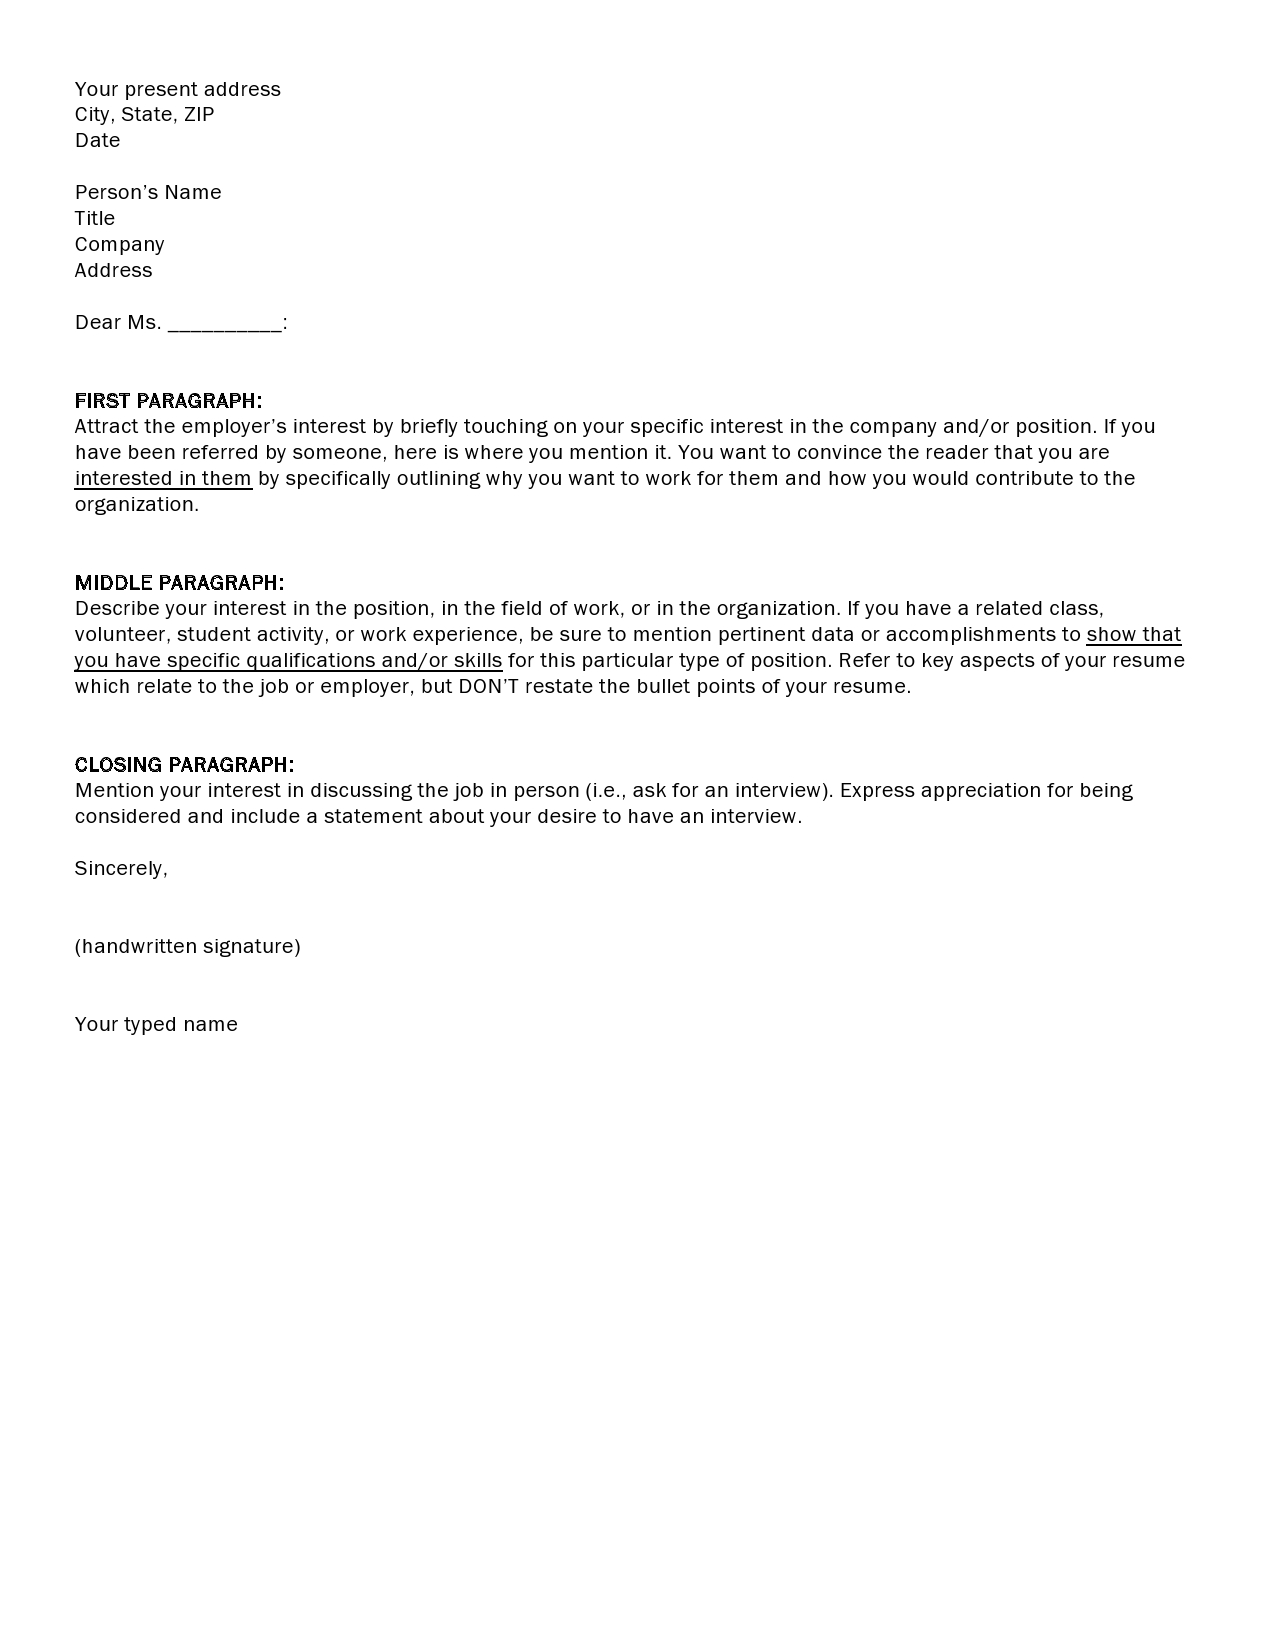 cover letter referred by